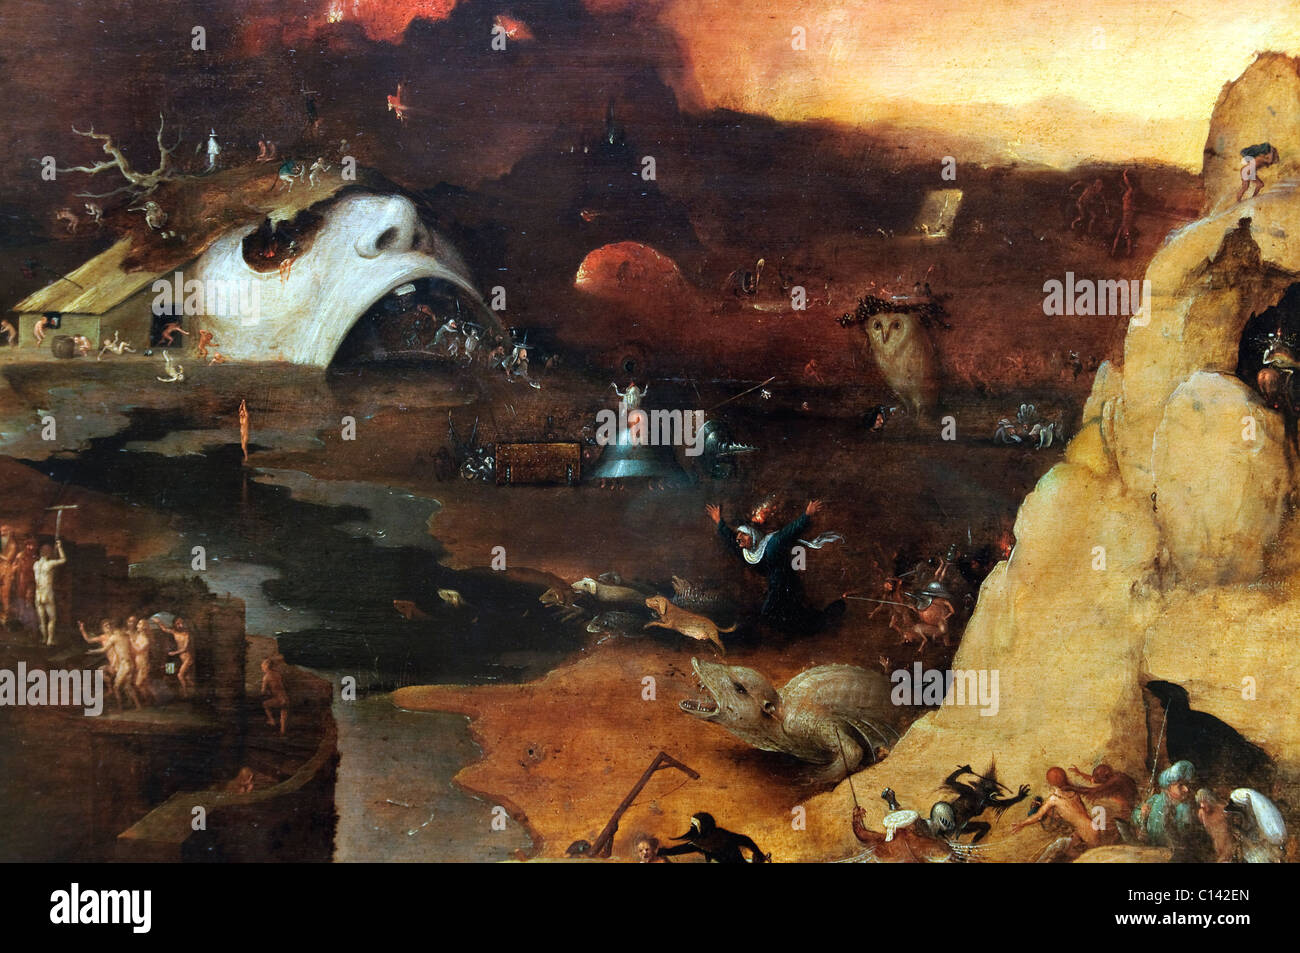 Detail: Christ's Descent into Hell, by Style of Hieronymus Bosch, - Stock Image